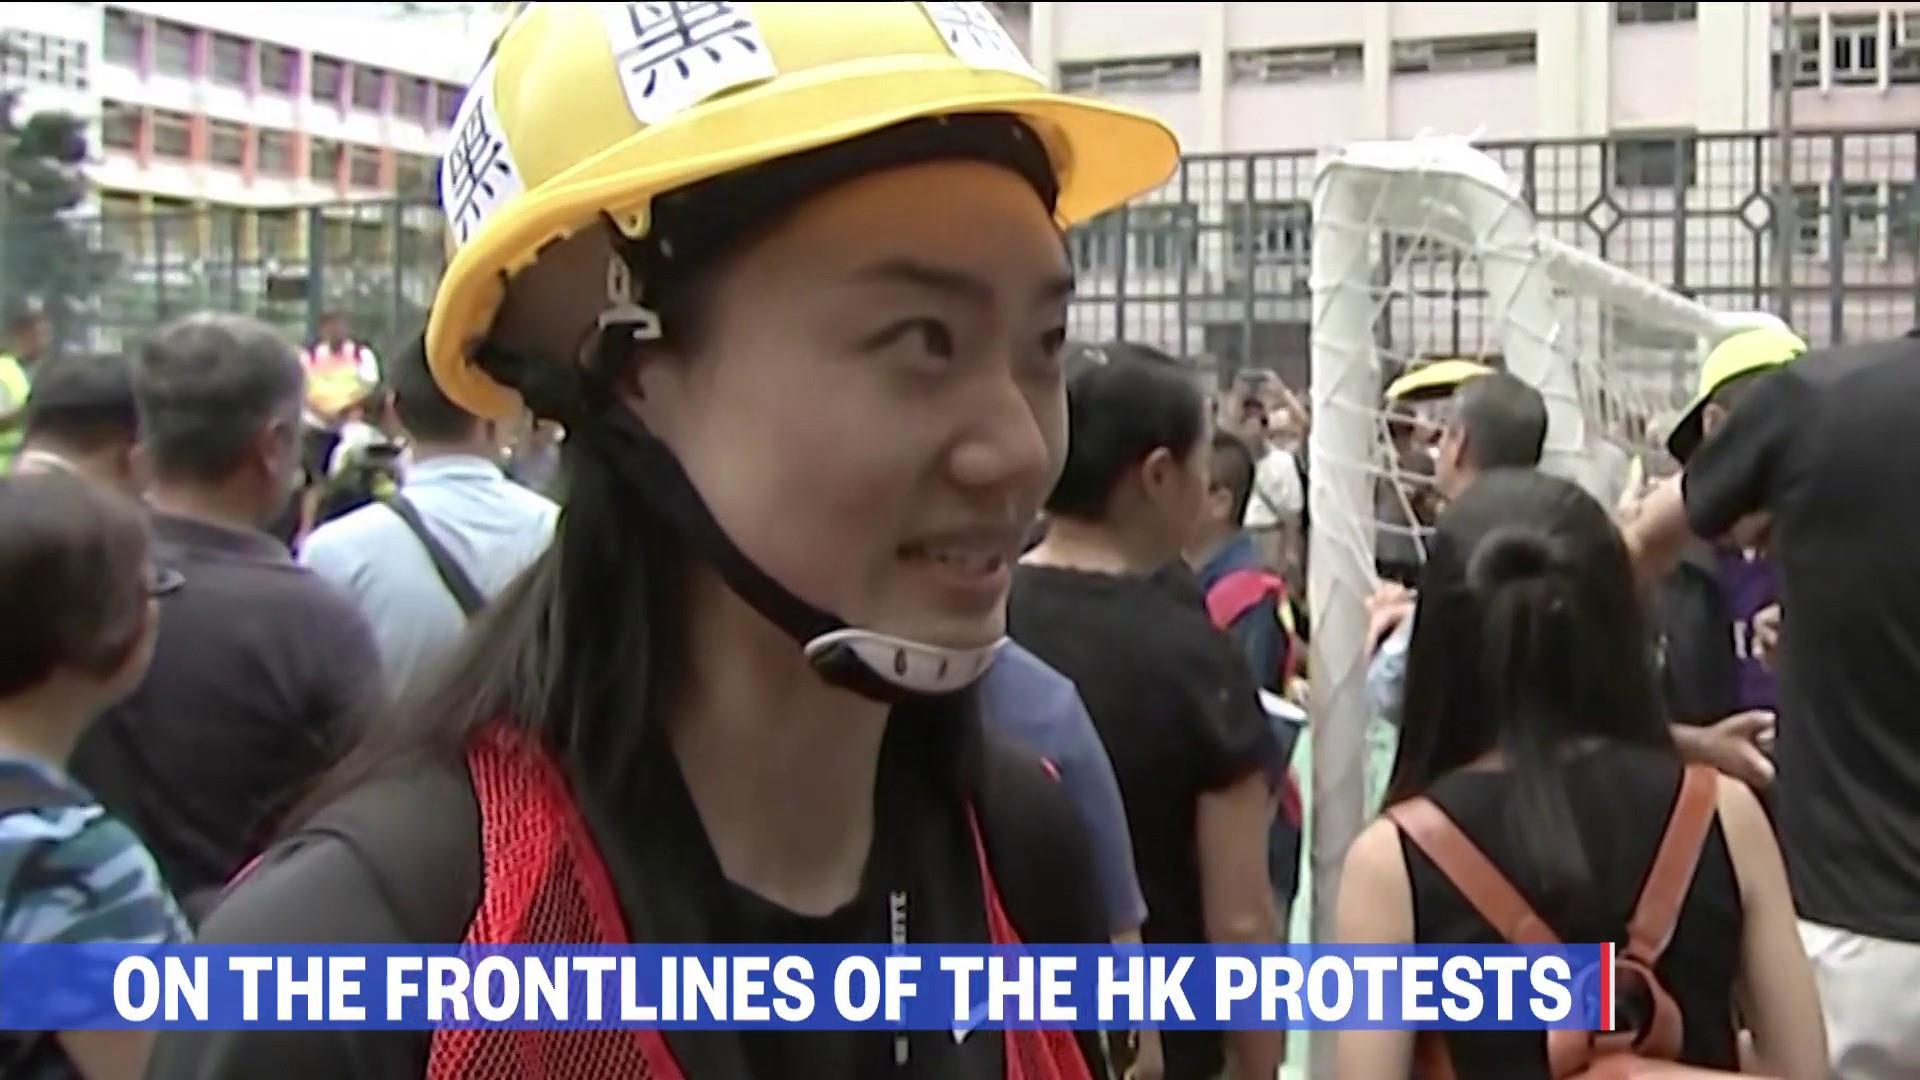 As Hong Kong protests turn violent, one man fights to preserve middle ground